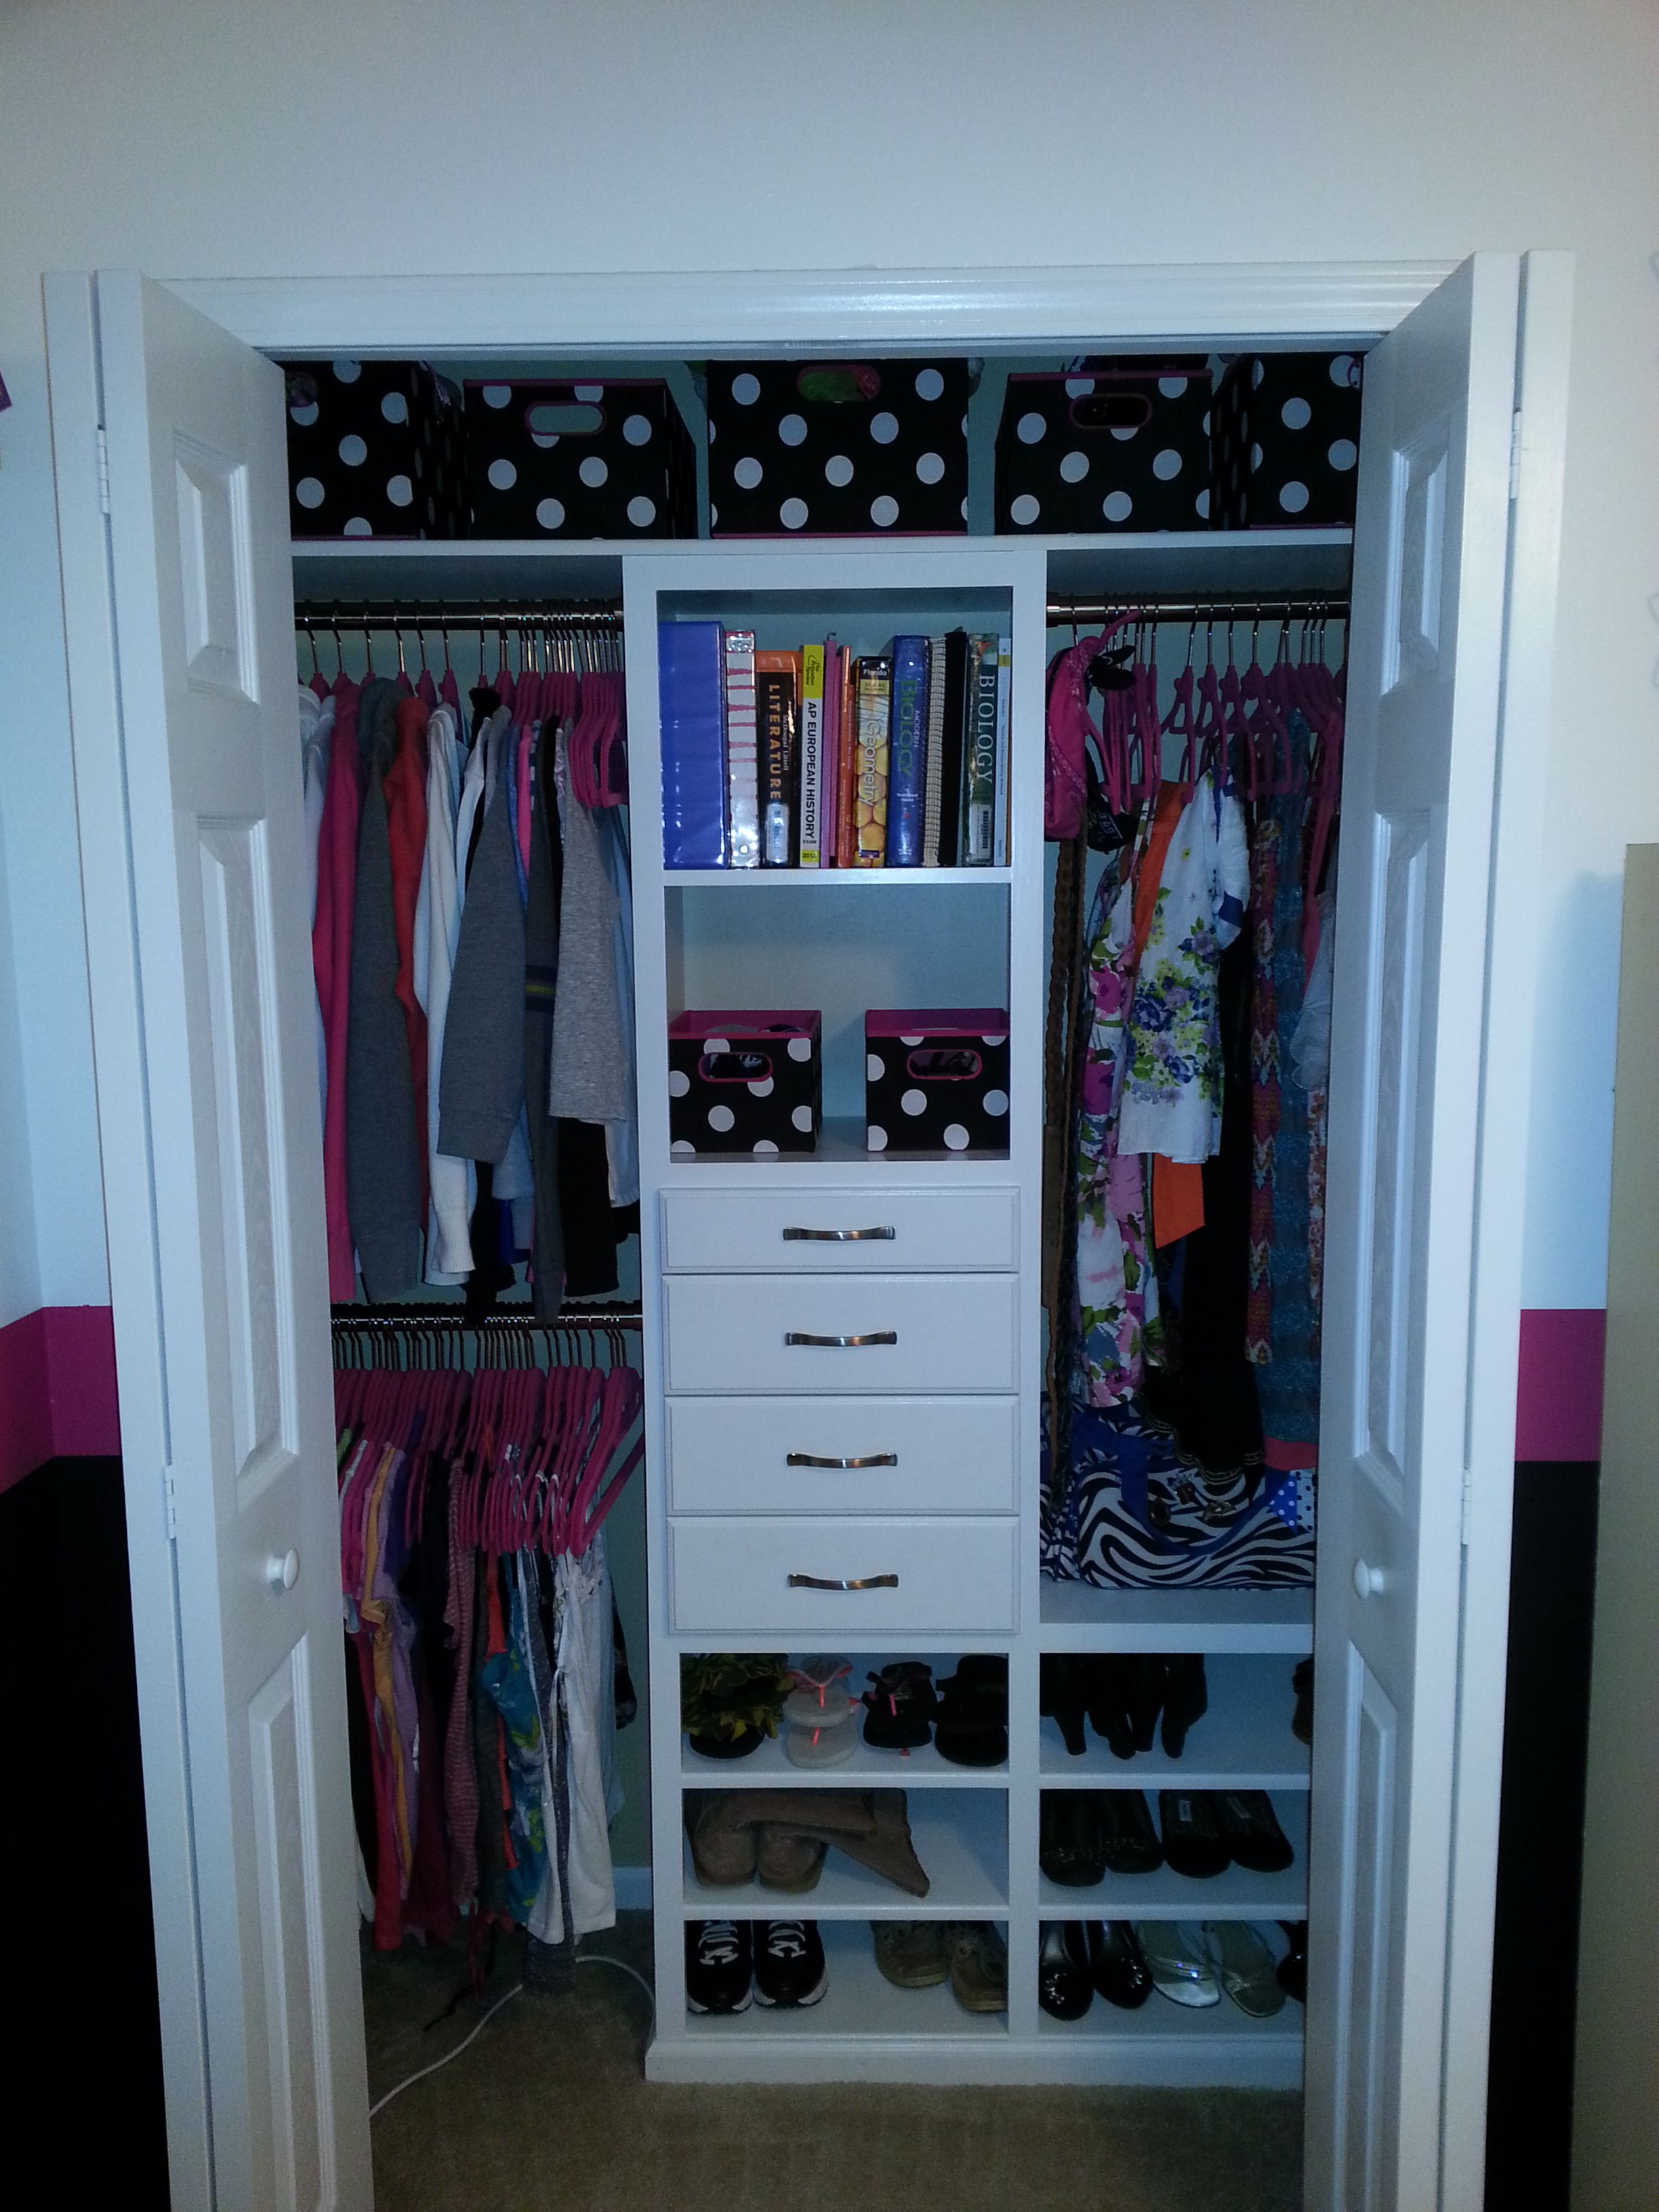 Diy Organization Ideas For Closets Teen Closet Get Organized In Style Free Step By Step Diy